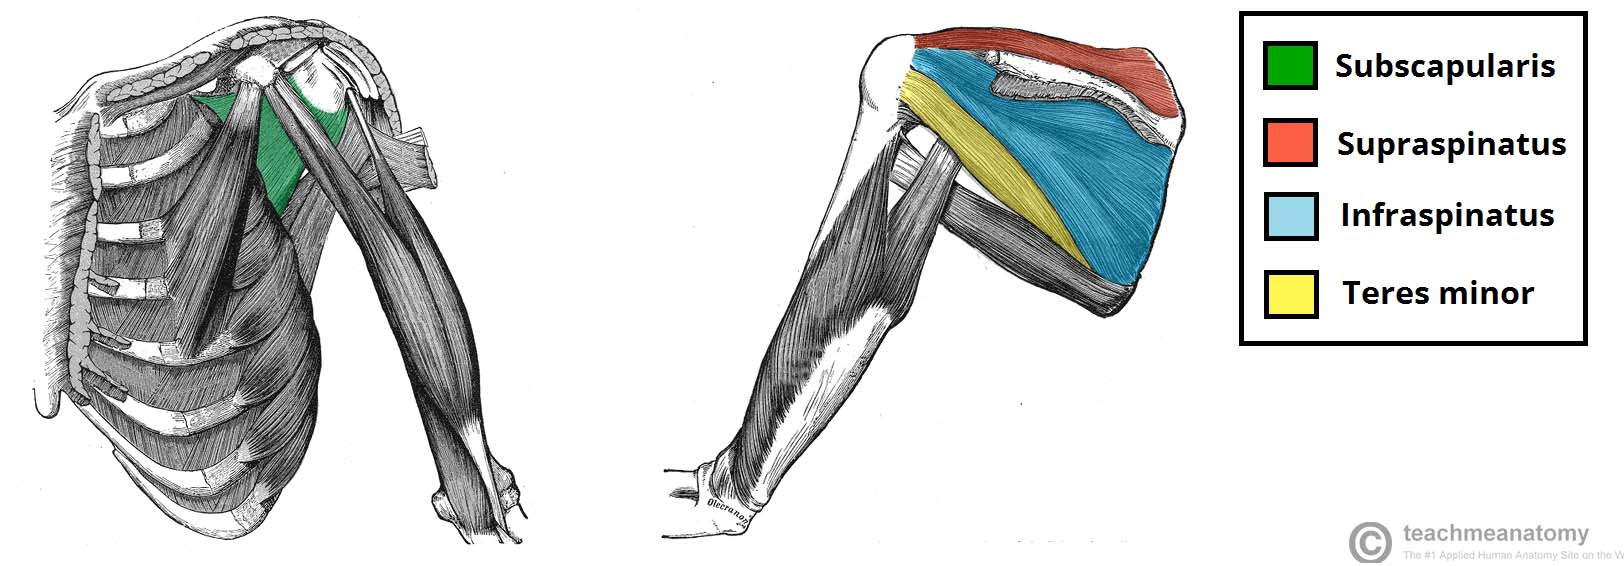 The Intrinsic Muscles of the Shoulder - TeachMeAnatomy